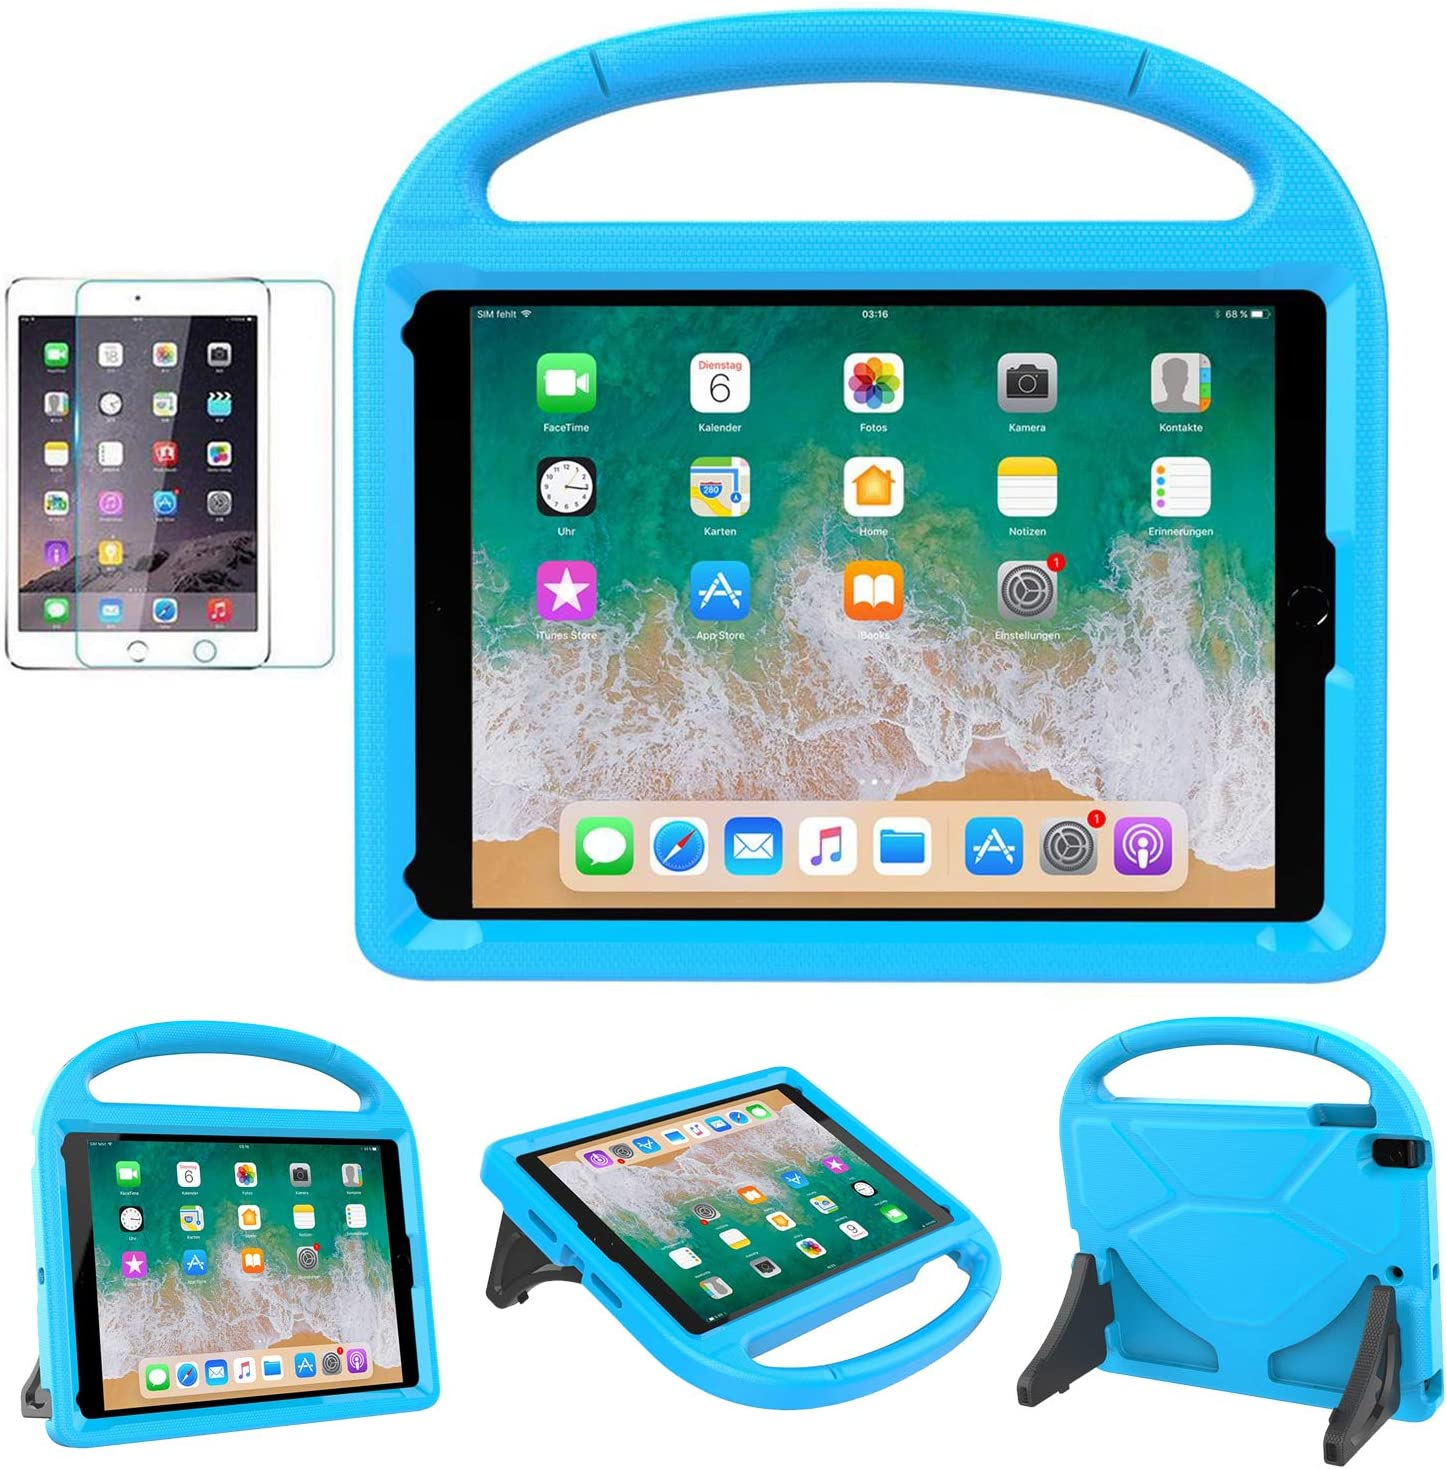 MOXOTEK Kids Case for iPad 9.7 2018/2017 / Air 1/2 / Pro 9.7, Durable Shockproof Protective Handle Stand Bumper Cover with Screen Protector for Apple 9.7 inch 5th/6th Generation, Blue